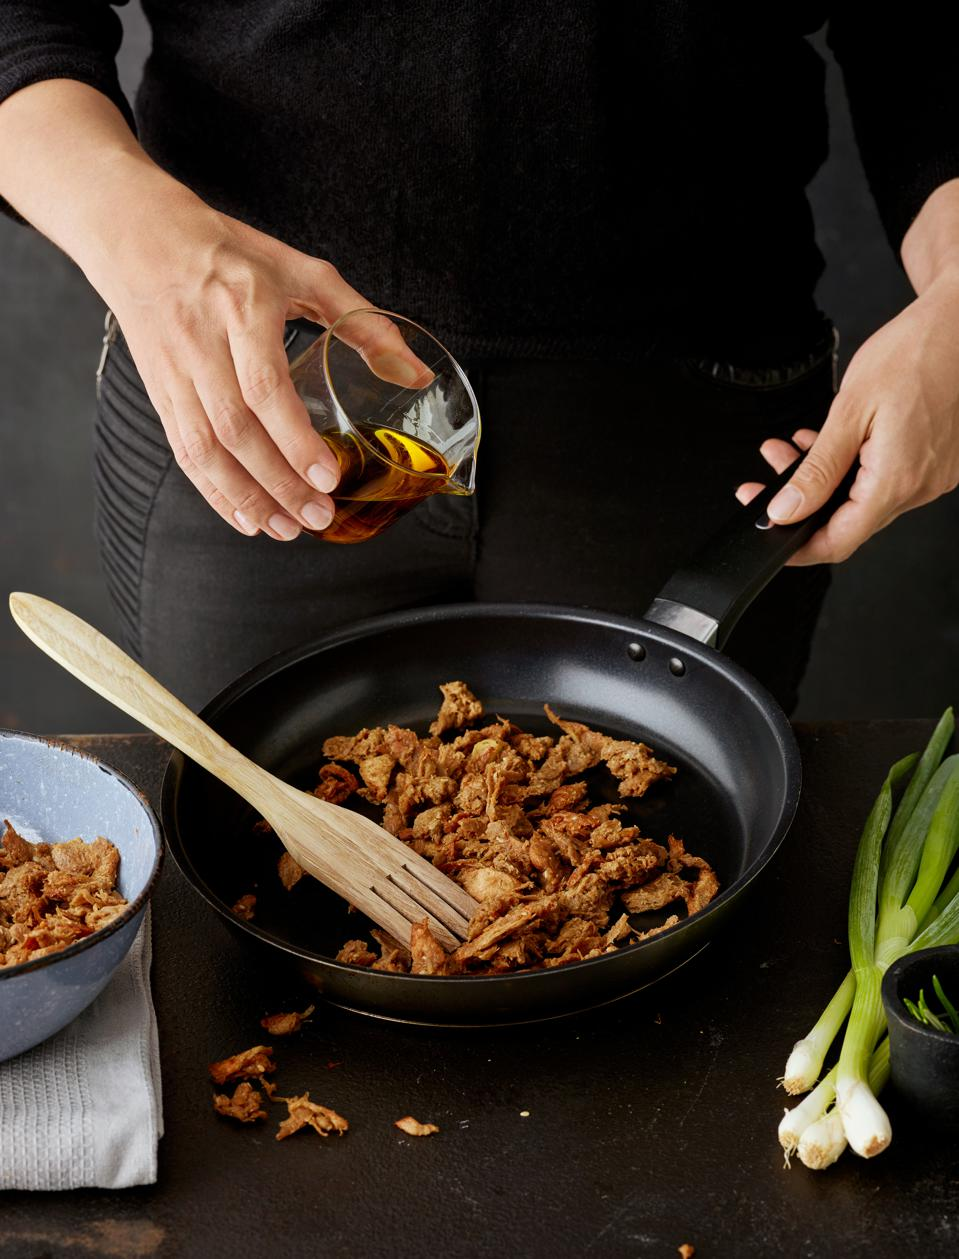 Someone pouring oil into a skillet with Pulled Oats meat alternative next to a bunch of green onions